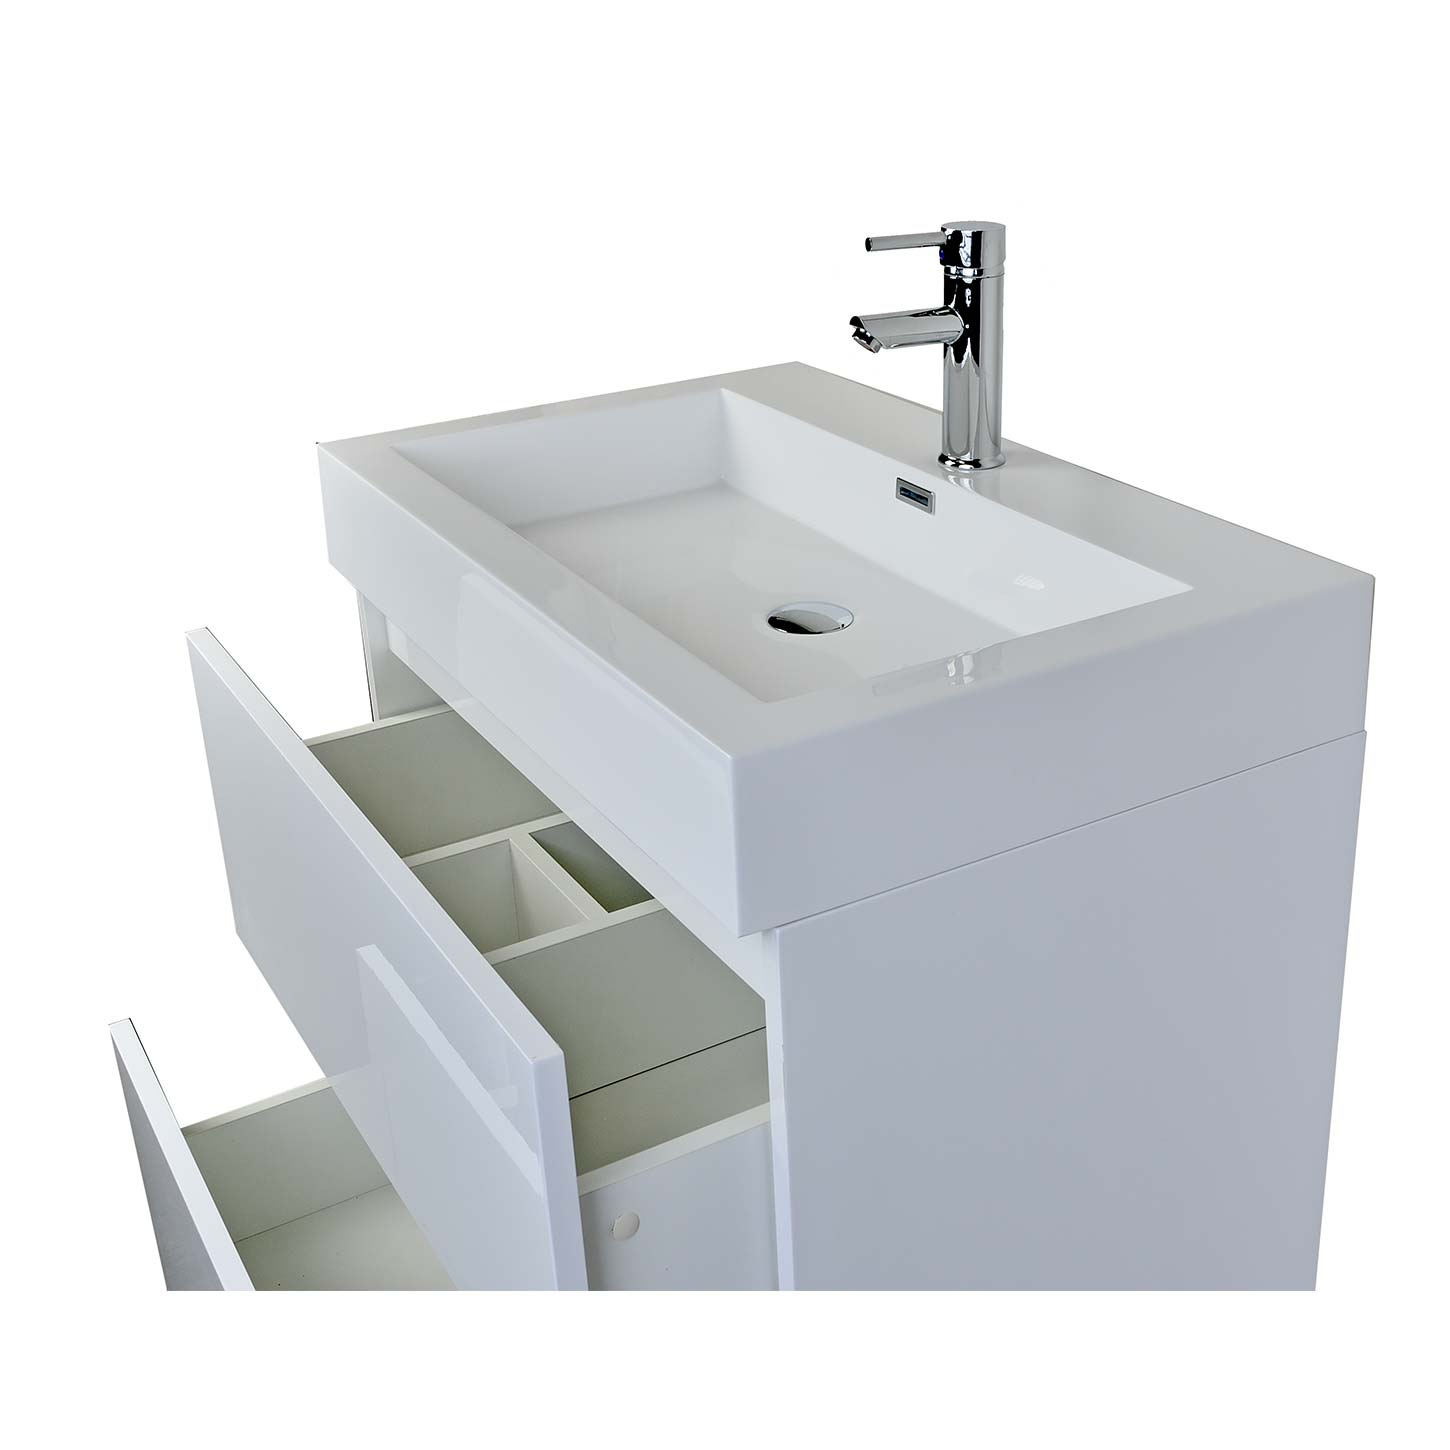 295 contemporary bathroom vanity in high gloss white tn ly750 hgw